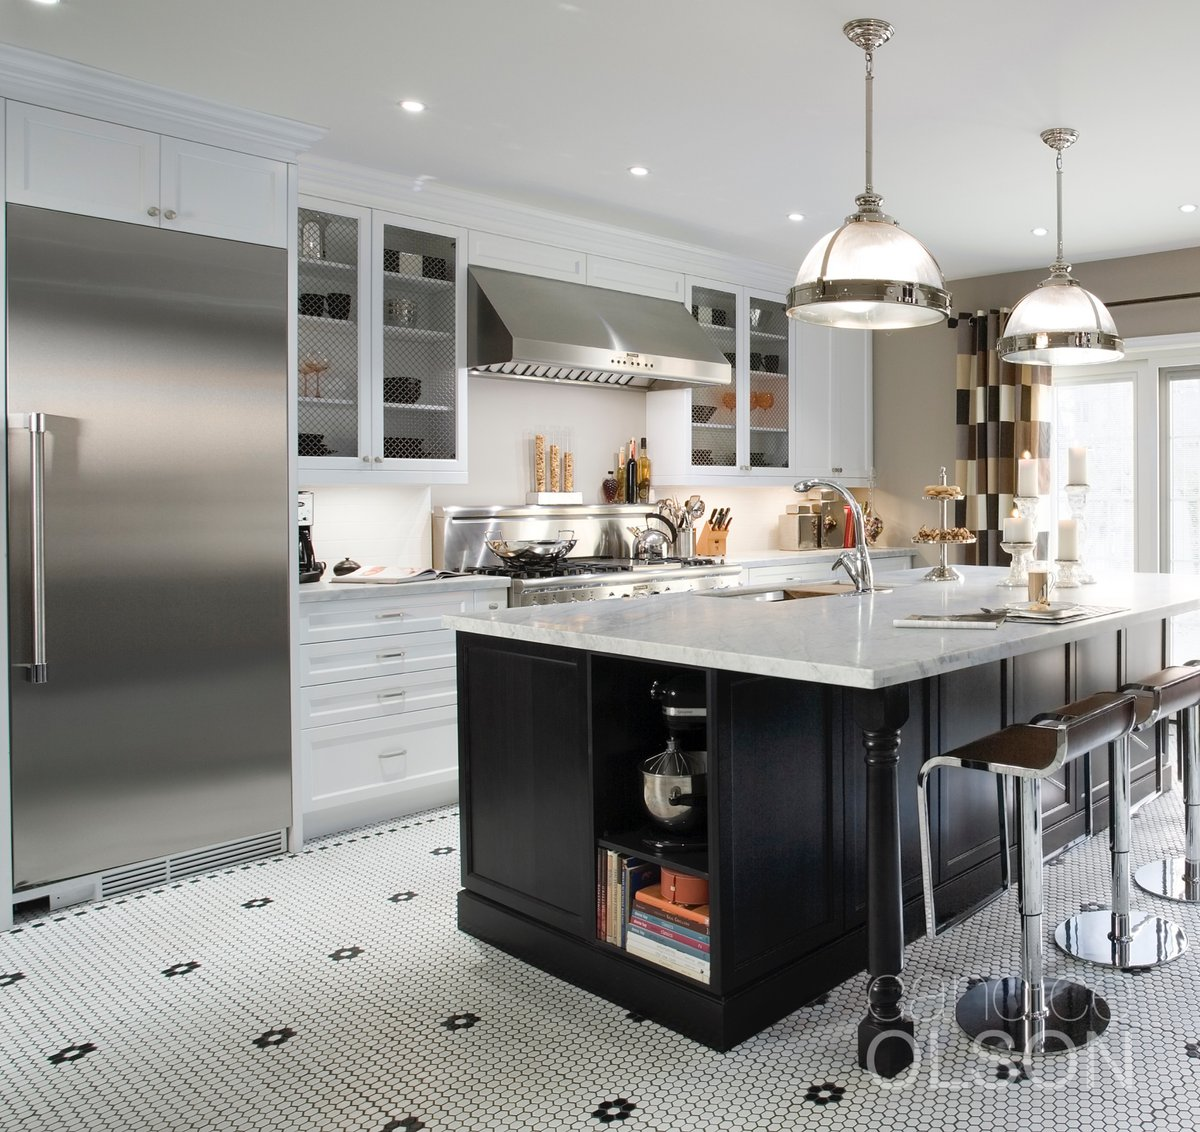 Candice Olson On Twitter From A Planning Perspective Any New Kitchen Layout And Flow Must Allow For Efficient Cooking Eating And Clean Up Candiceolson Candiceolsondesign Kitchendesign Kitchencabinets Kitchensolutions Kitchenrenovations